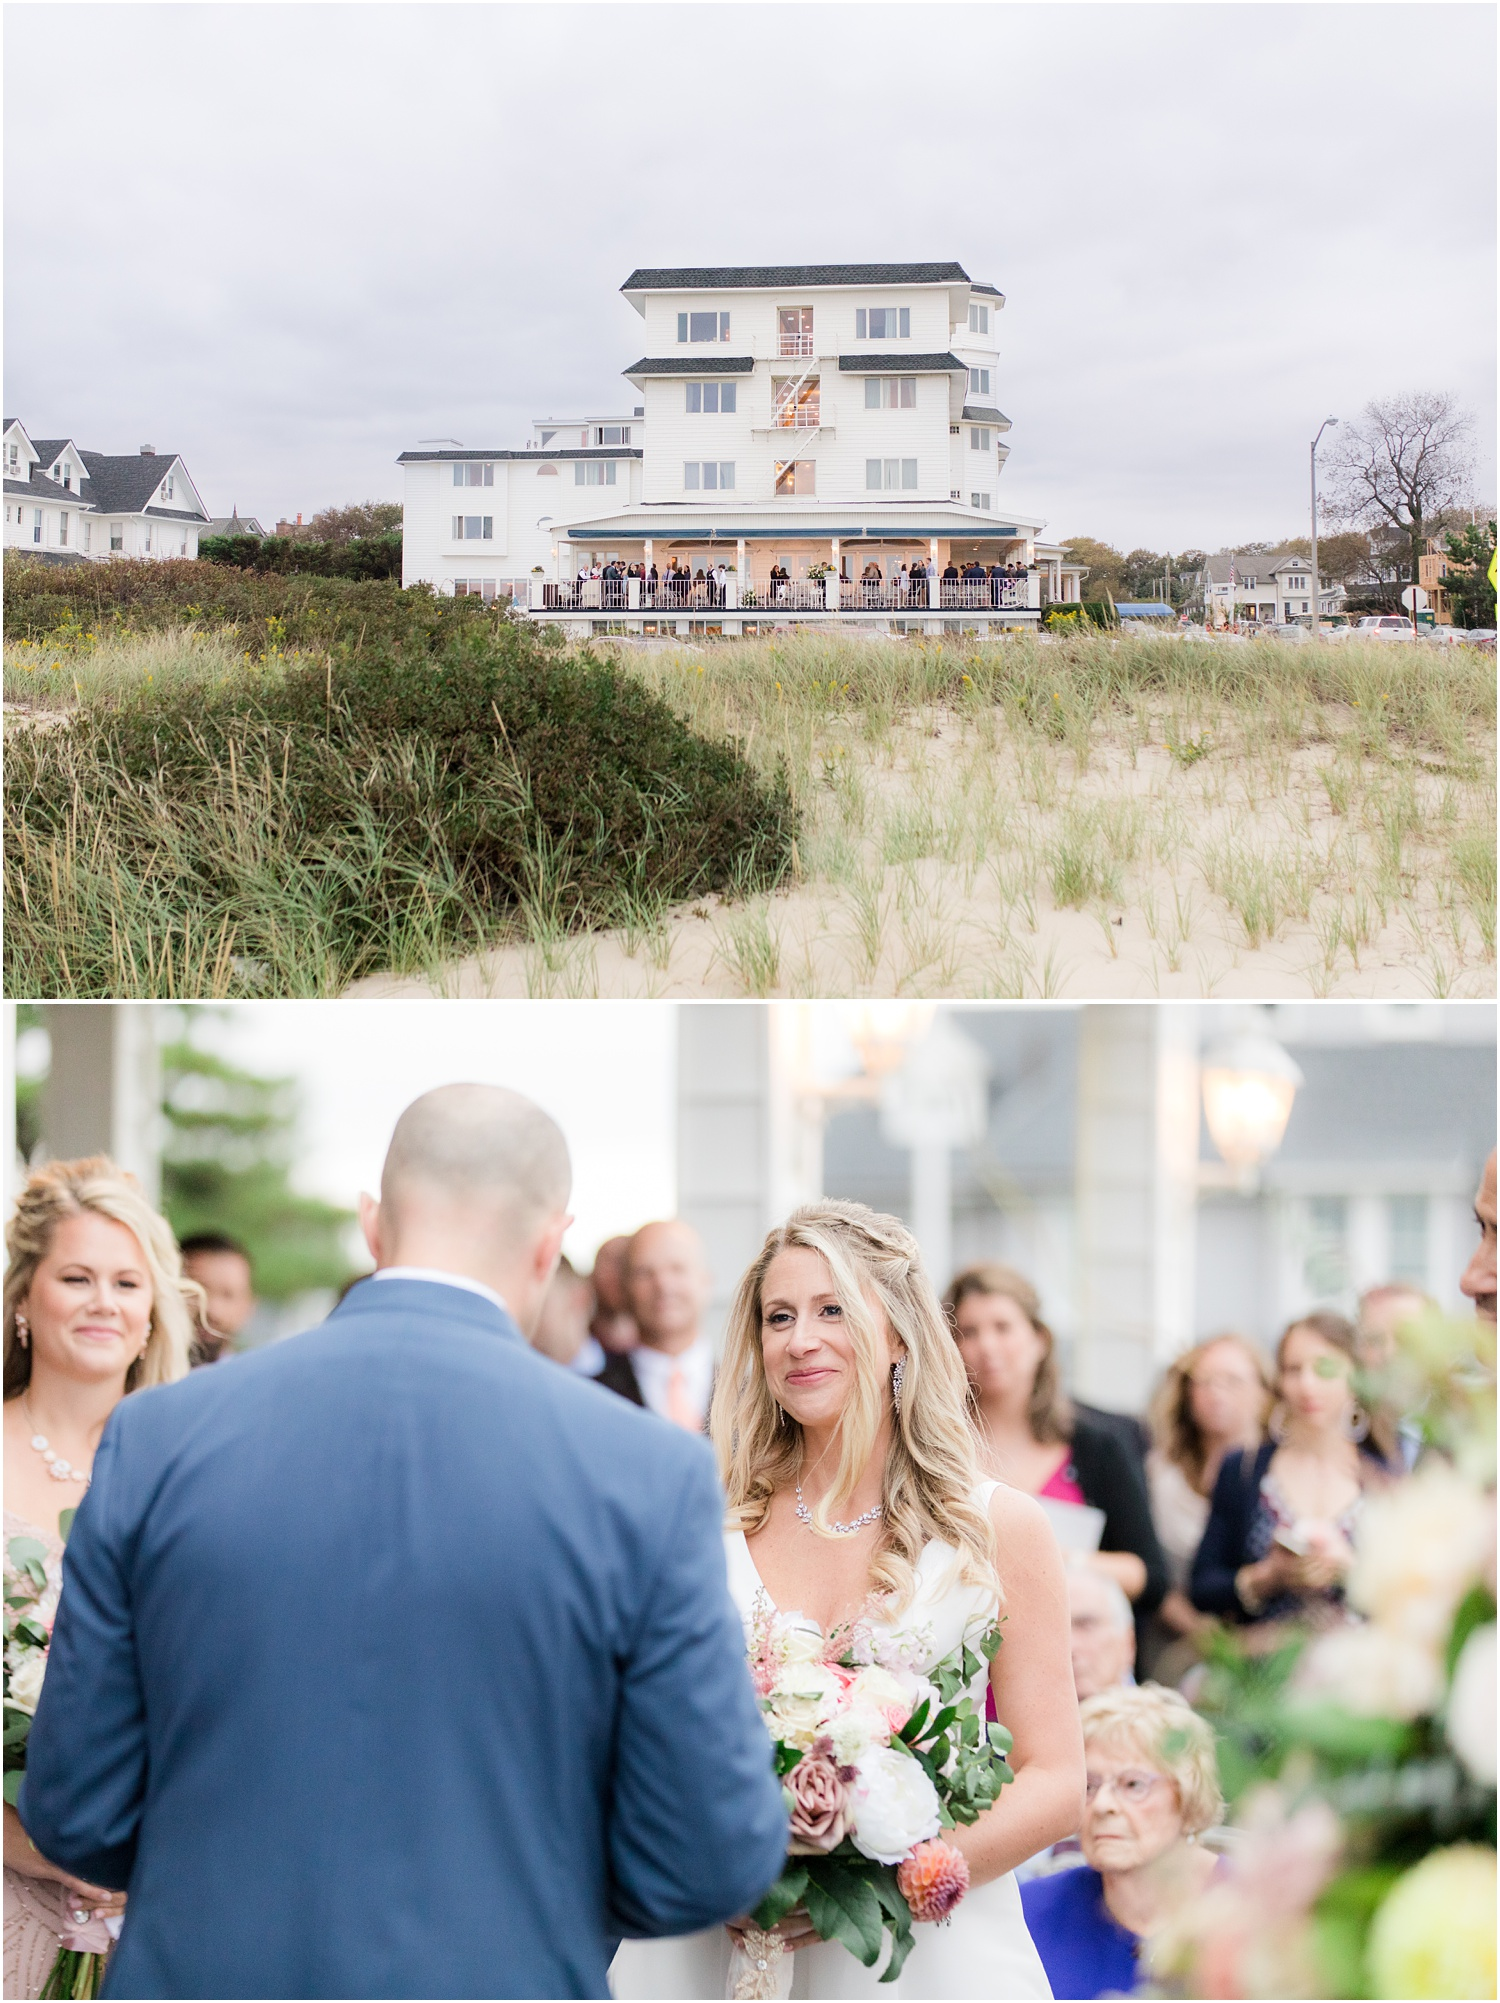 Photo of The Breakers Oceanfront Hotel and wedding ceremony on the porch in Spring Lake, NJ.